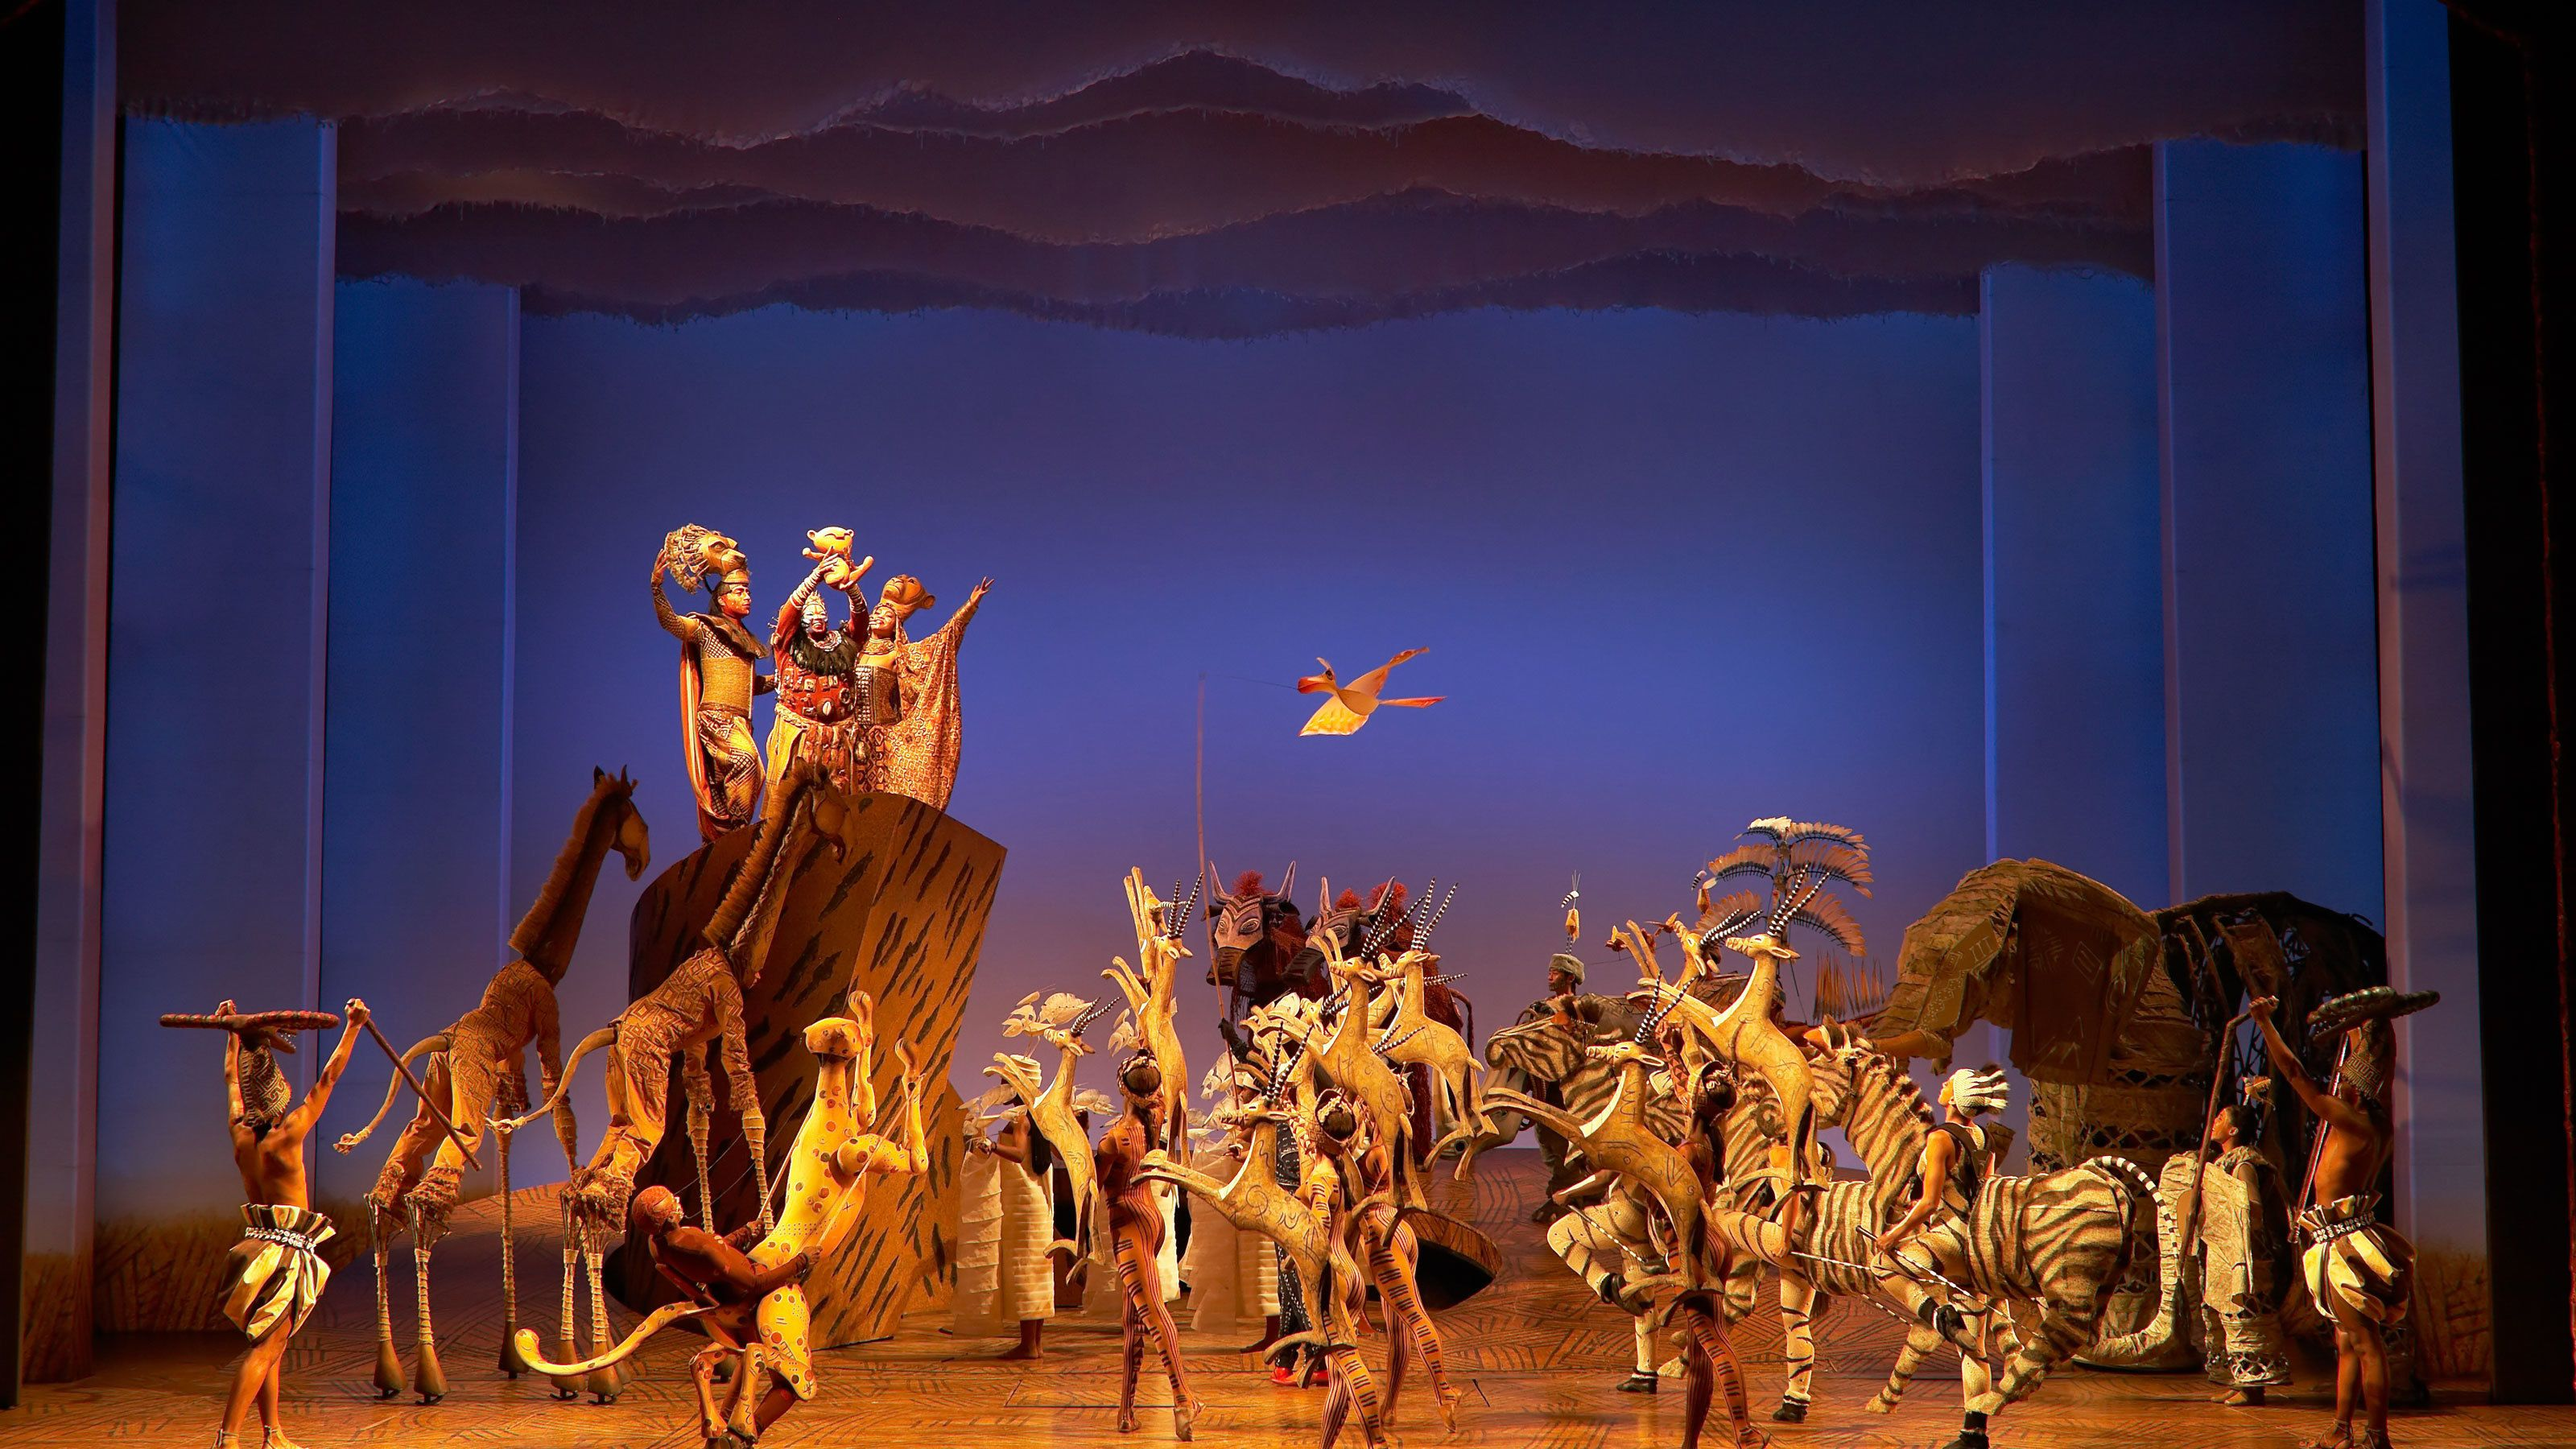 The Circle of Life performance in The Lion King in New York